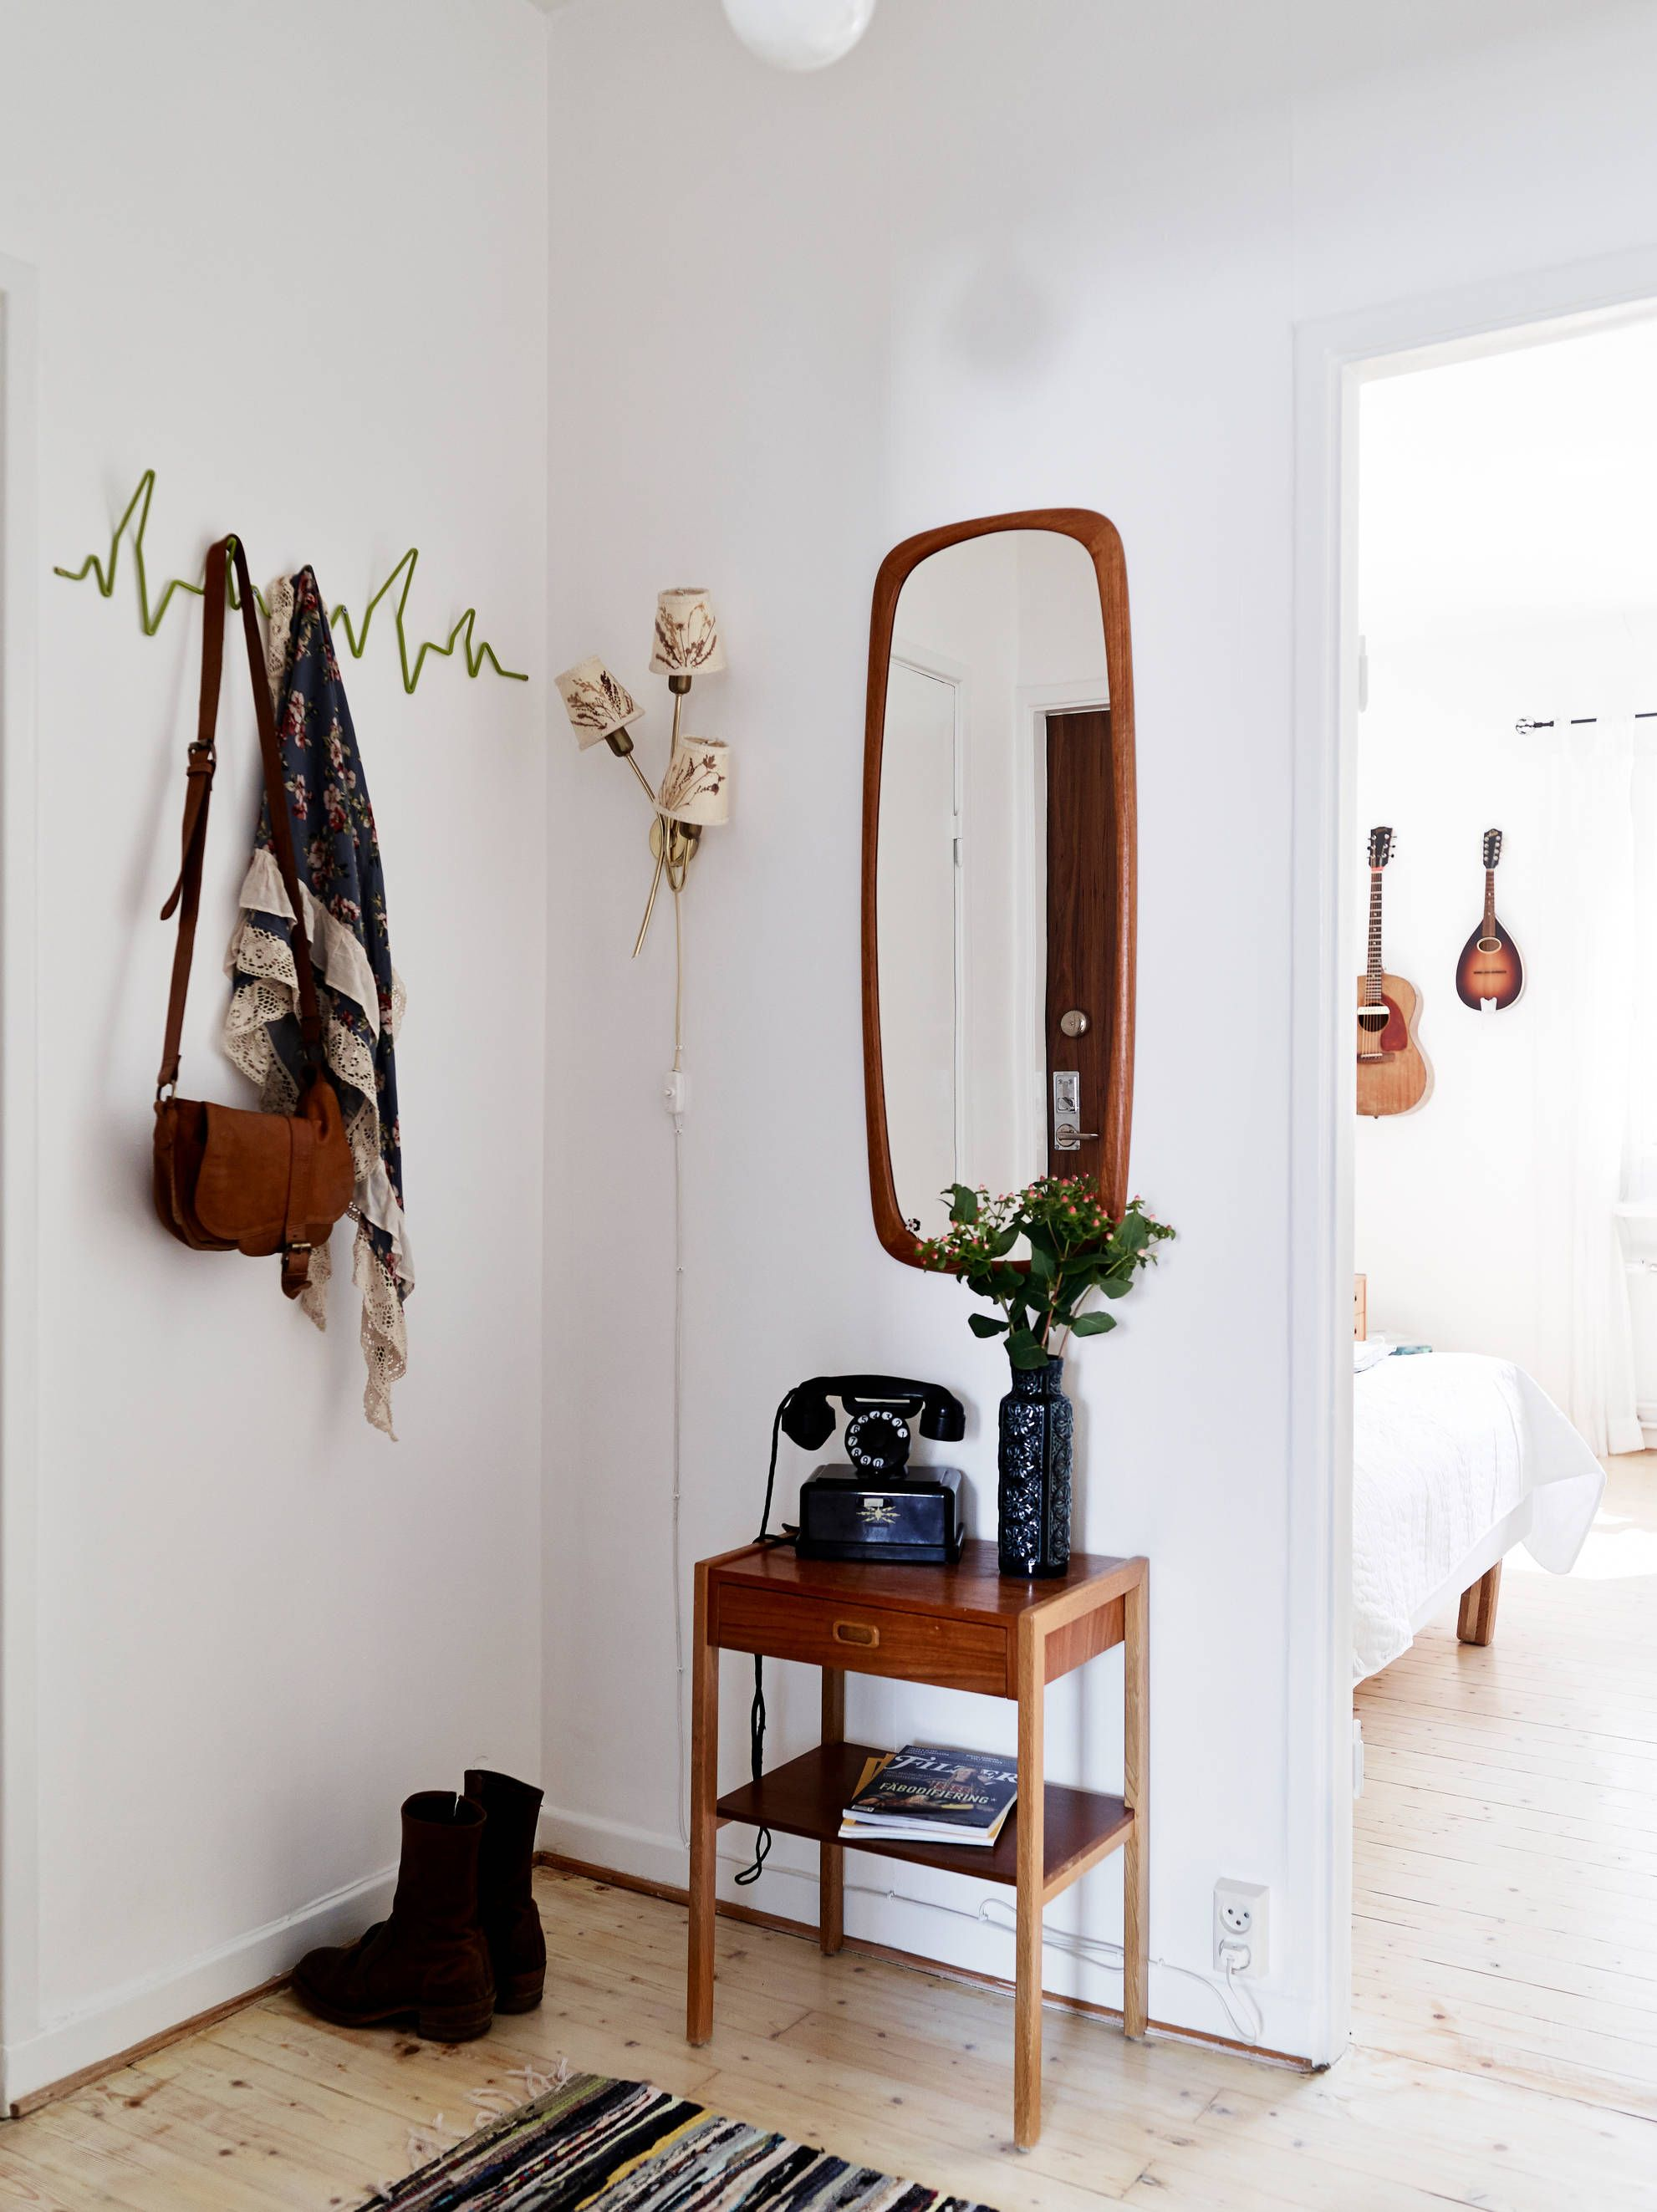 charming cabin coat rack. lovely entry space  white wooden side table mirror home decor sfgirlbybay House Tour An Eclectic Mix of Vintage Furniture in a Paris Loft